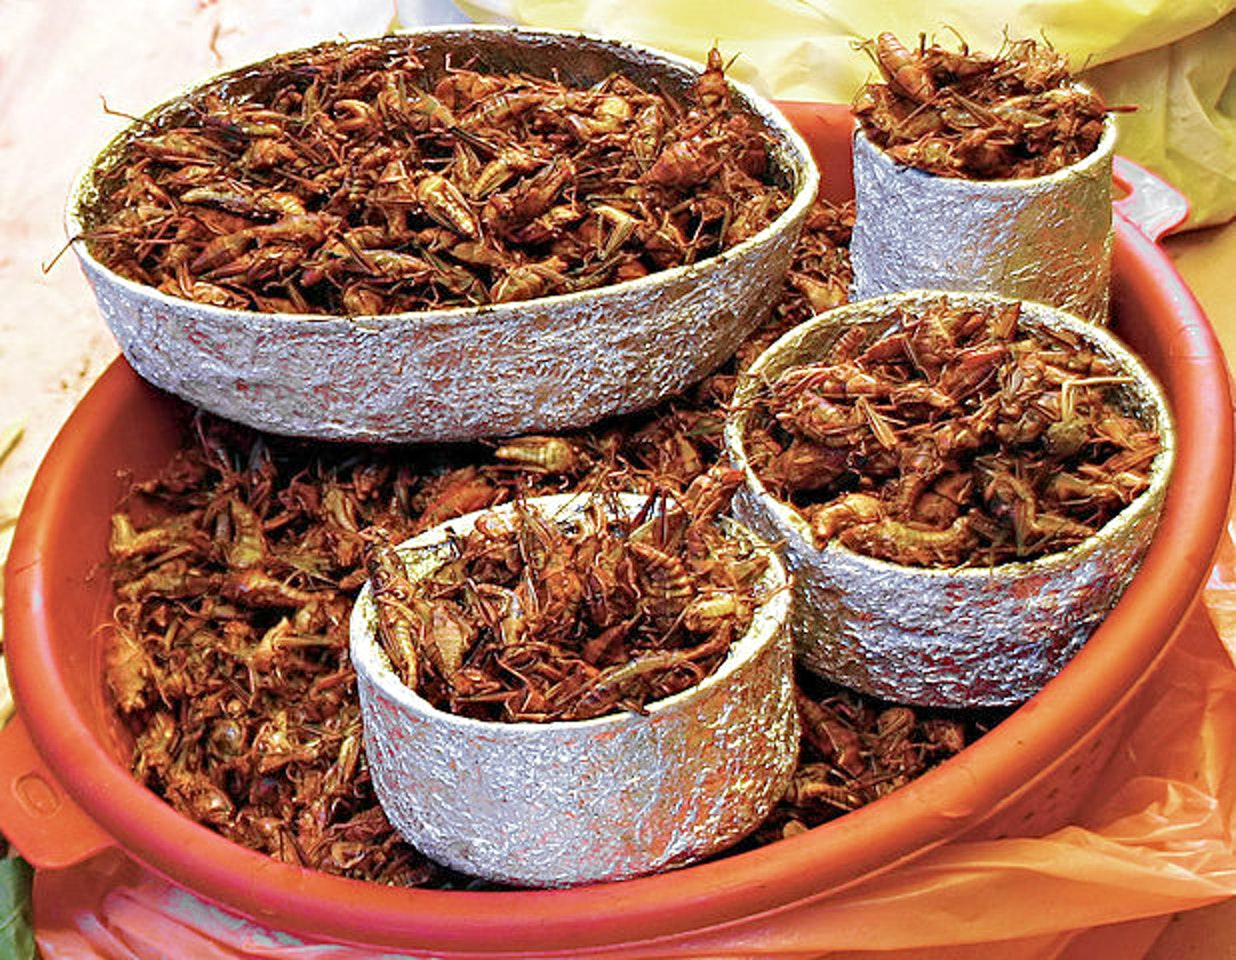 A basket of chapulines aka roasted crickets.